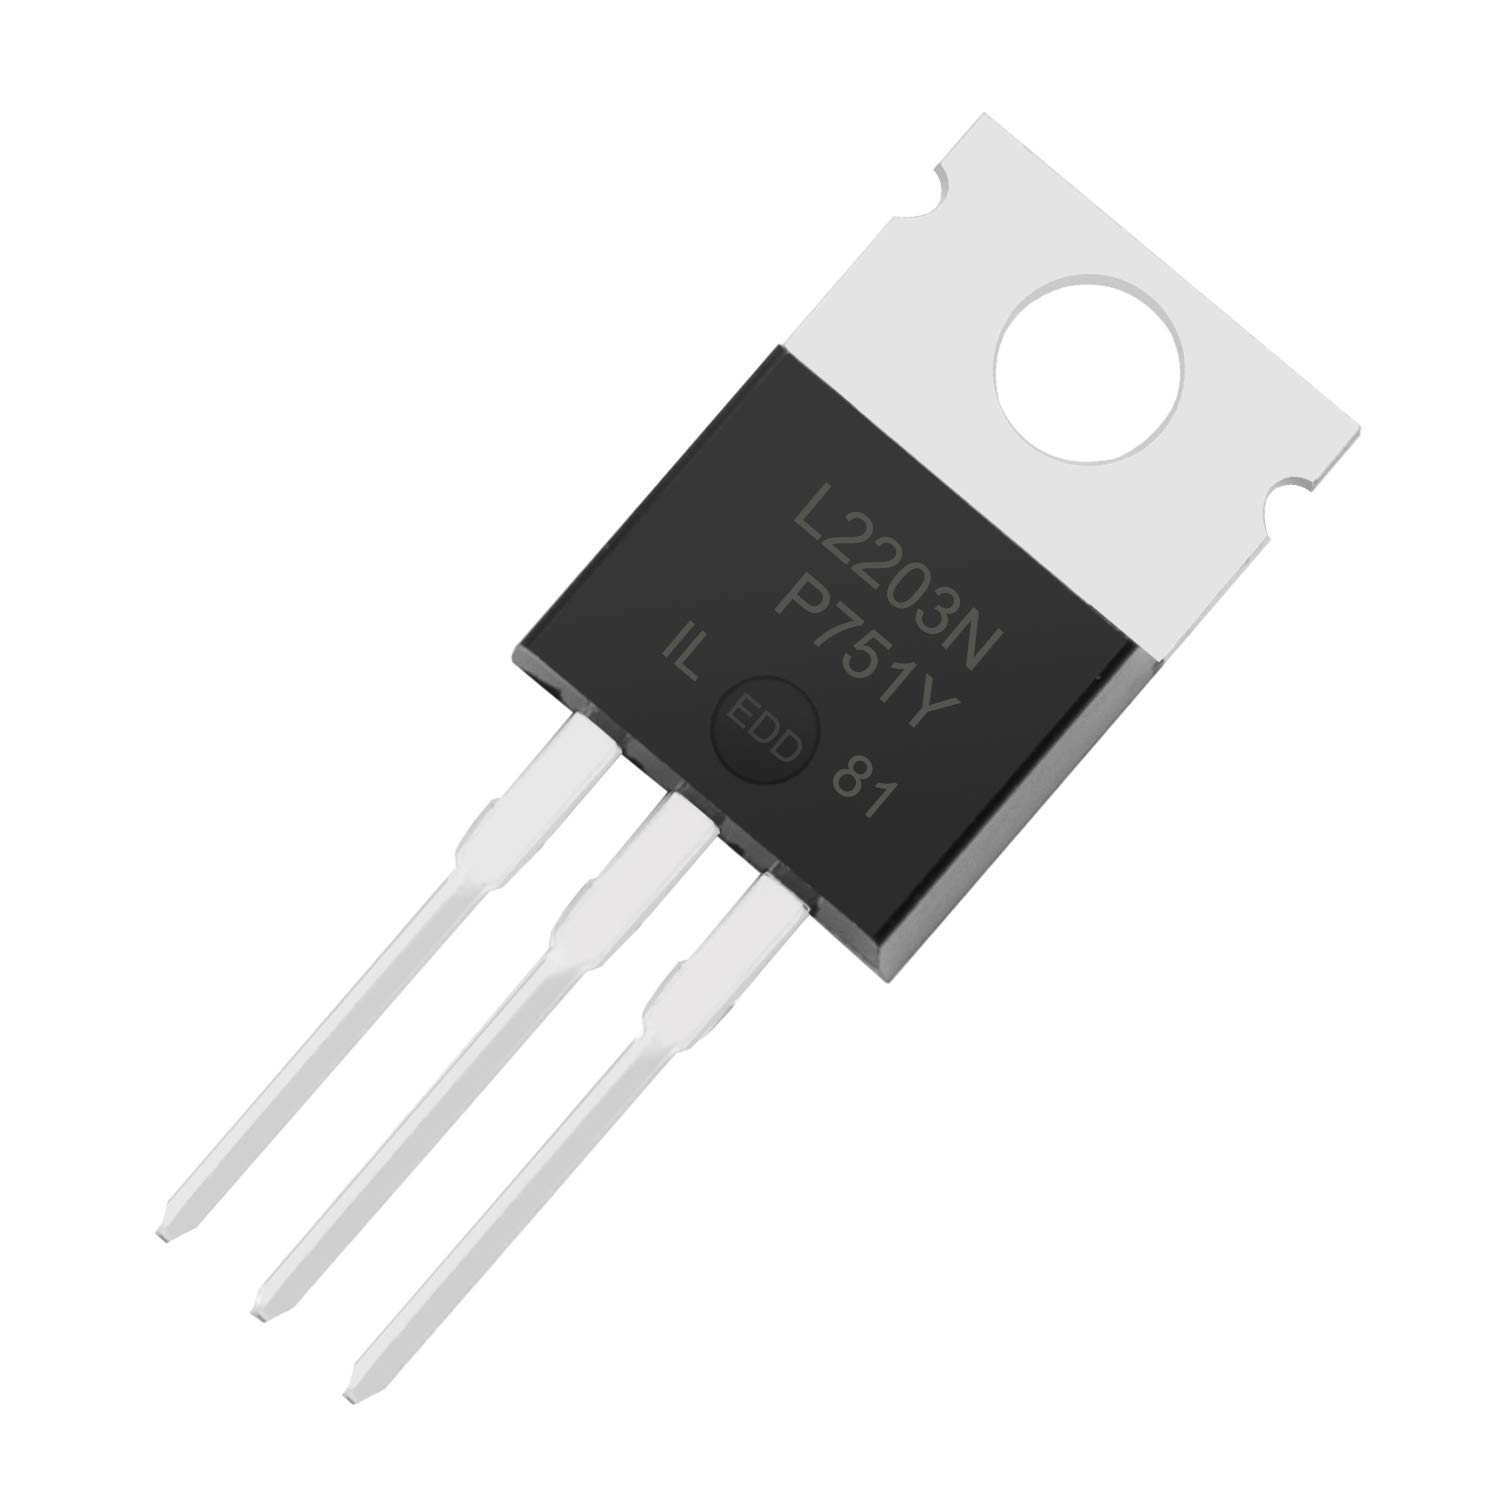 Chanzon 10pcs IRL2203NPBF TO-220 Power Sic MOSFET 116A Transistor